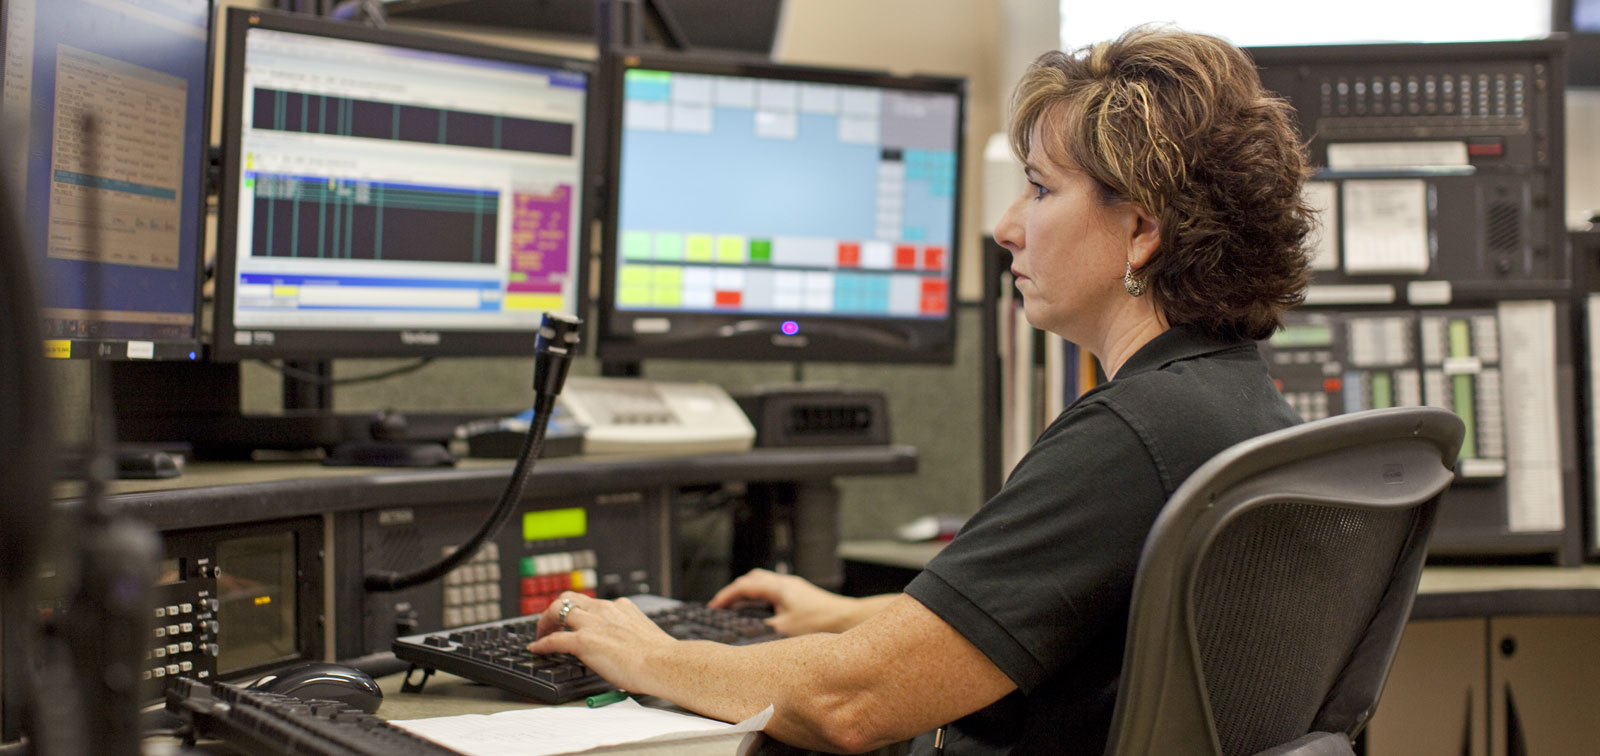 Woman working at utility command station